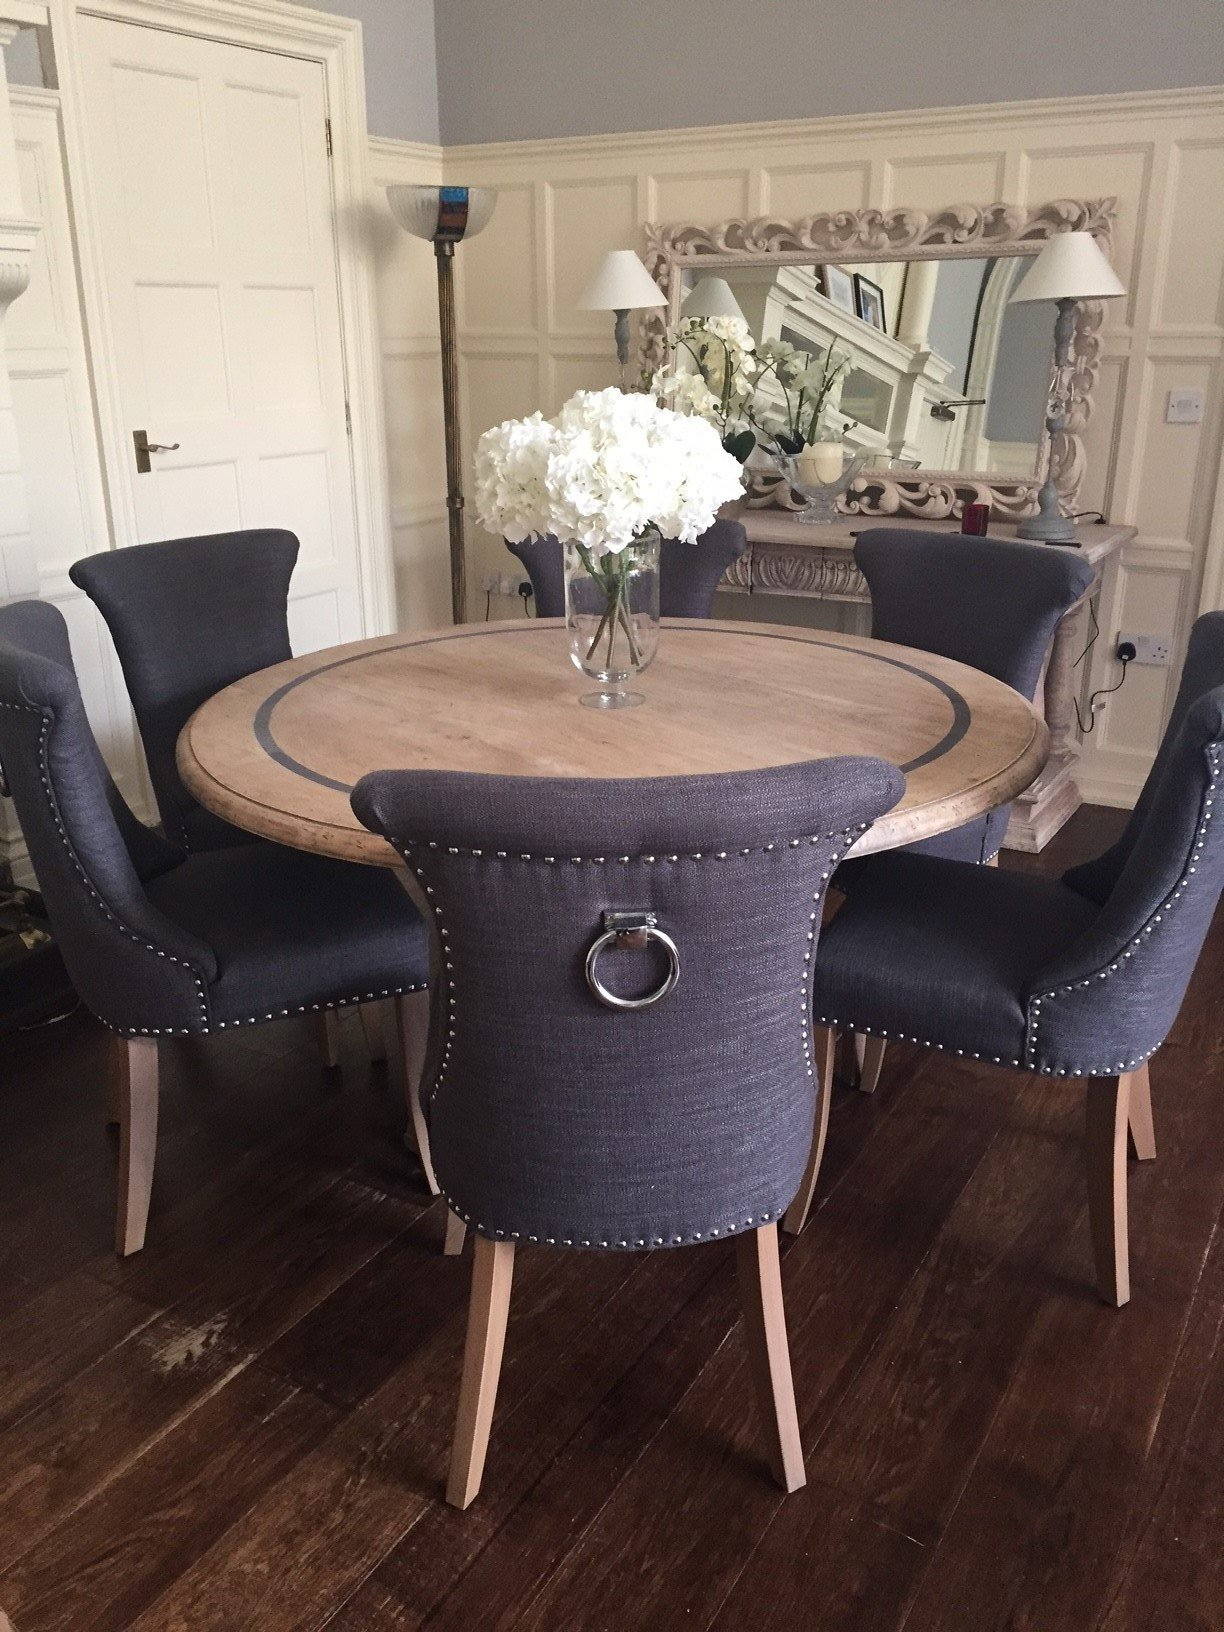 designer tables and chairs